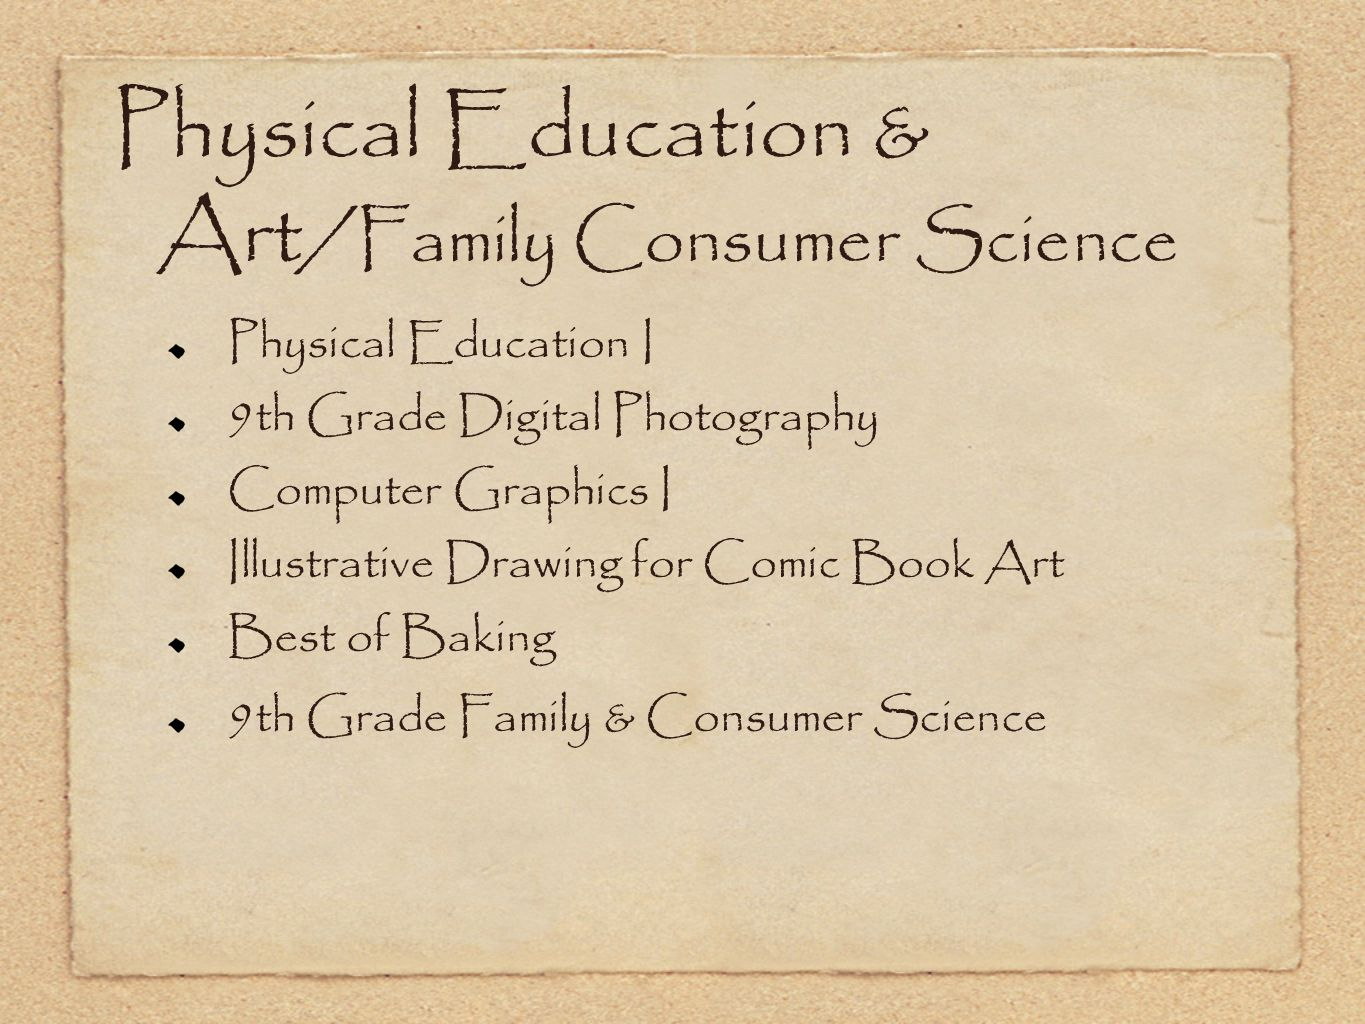 Physical Education & Art/Family Consumer Science